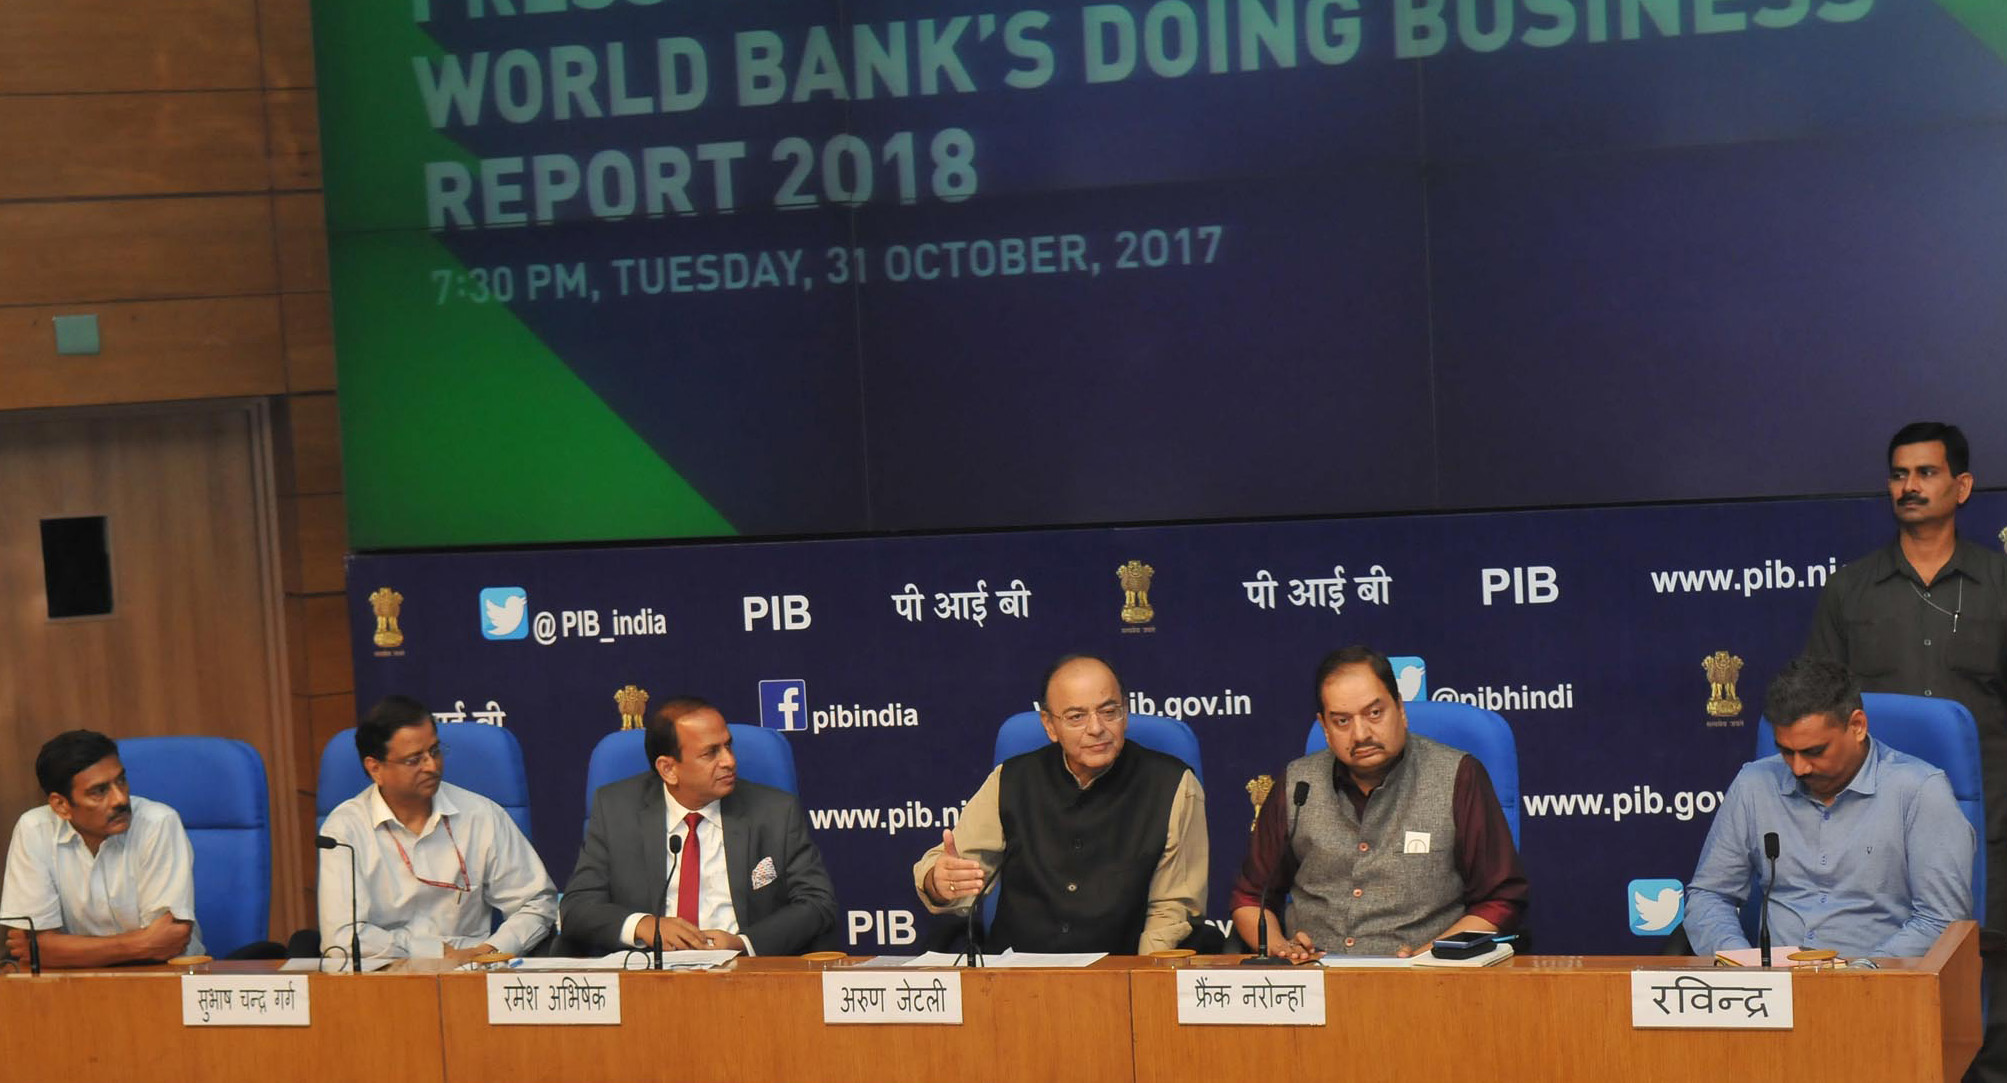 The Union Minister for Finance and Corporate Affairs, Shri Arun Jaitley addressing a press conference on India's ranking in the World Bank's Ease of Doing Business Report 2018, in New Delhi on October 31, 2017. The Secretary, DIPP, Shri Ramesh Abhishek, the Principal Director General (M&C), Press Information Bureau, Shri A.P. Frank Noronha and other dignitaries are also seen.